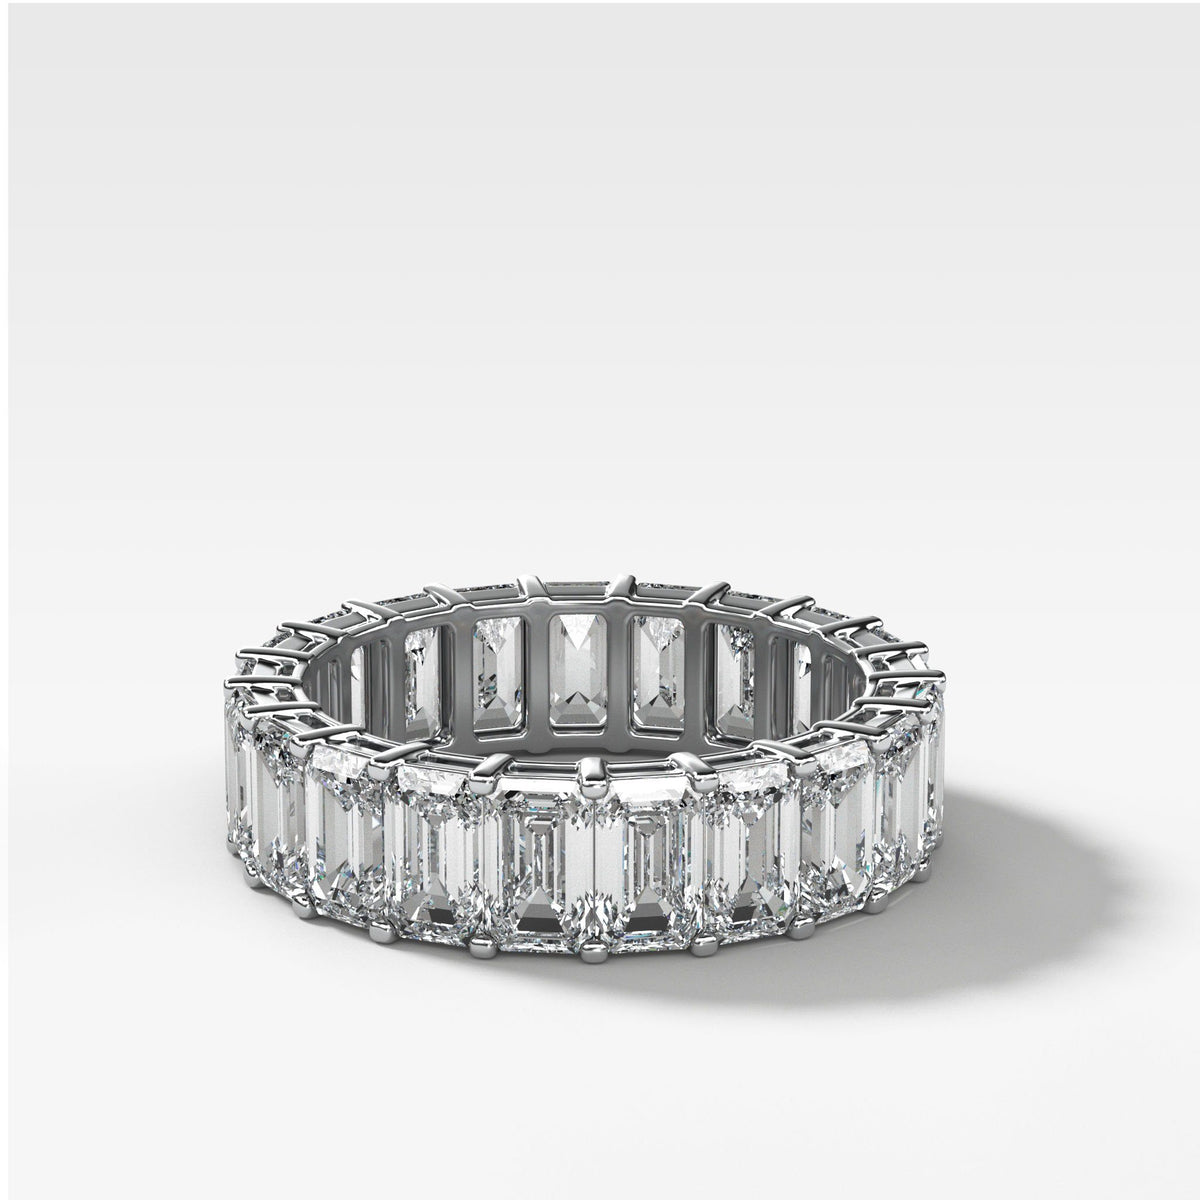 Emerald Cut Constellation Eternity Band available in White Gold by Good Stone